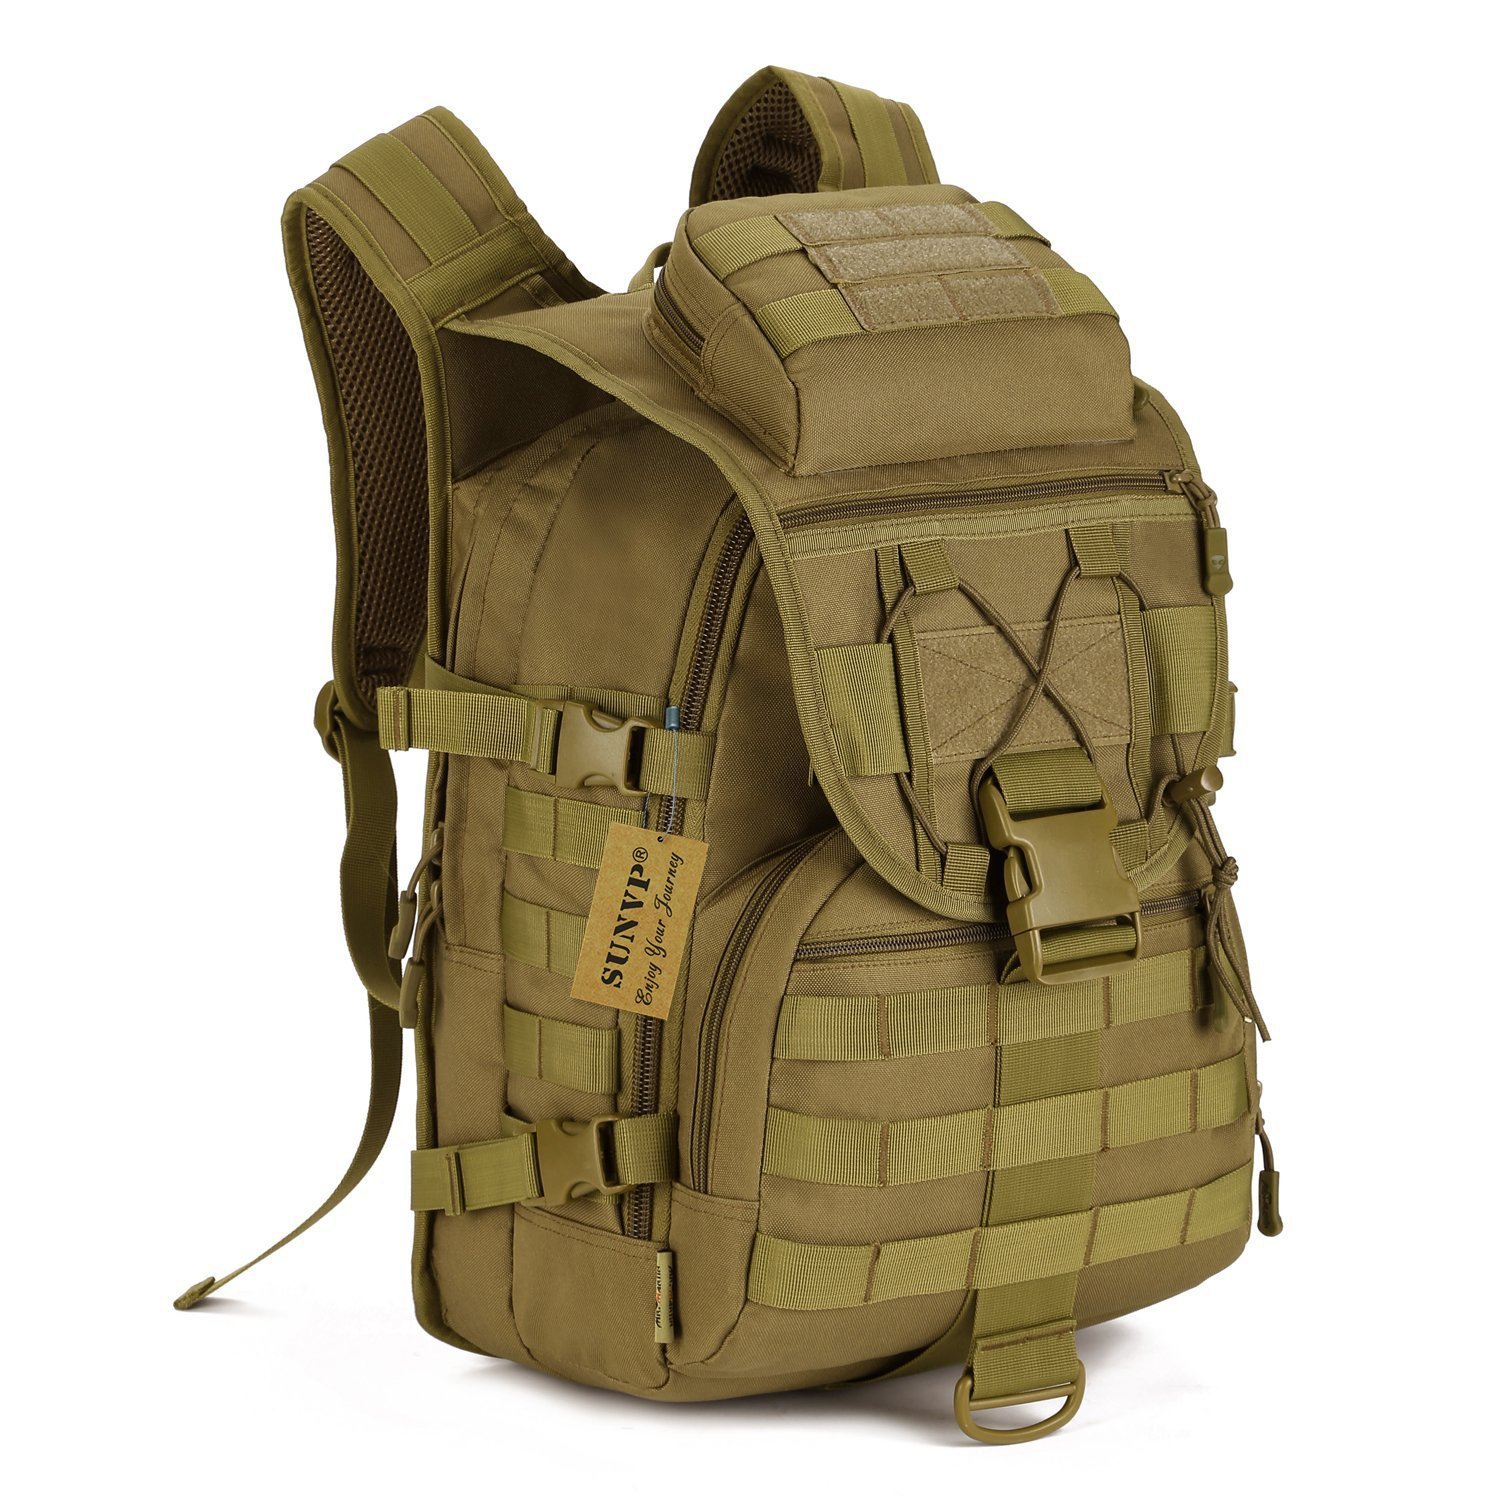 SUNVP 40L Tactical Daypack MOLLE Assault Backpack Pack Military Gear Rucksack